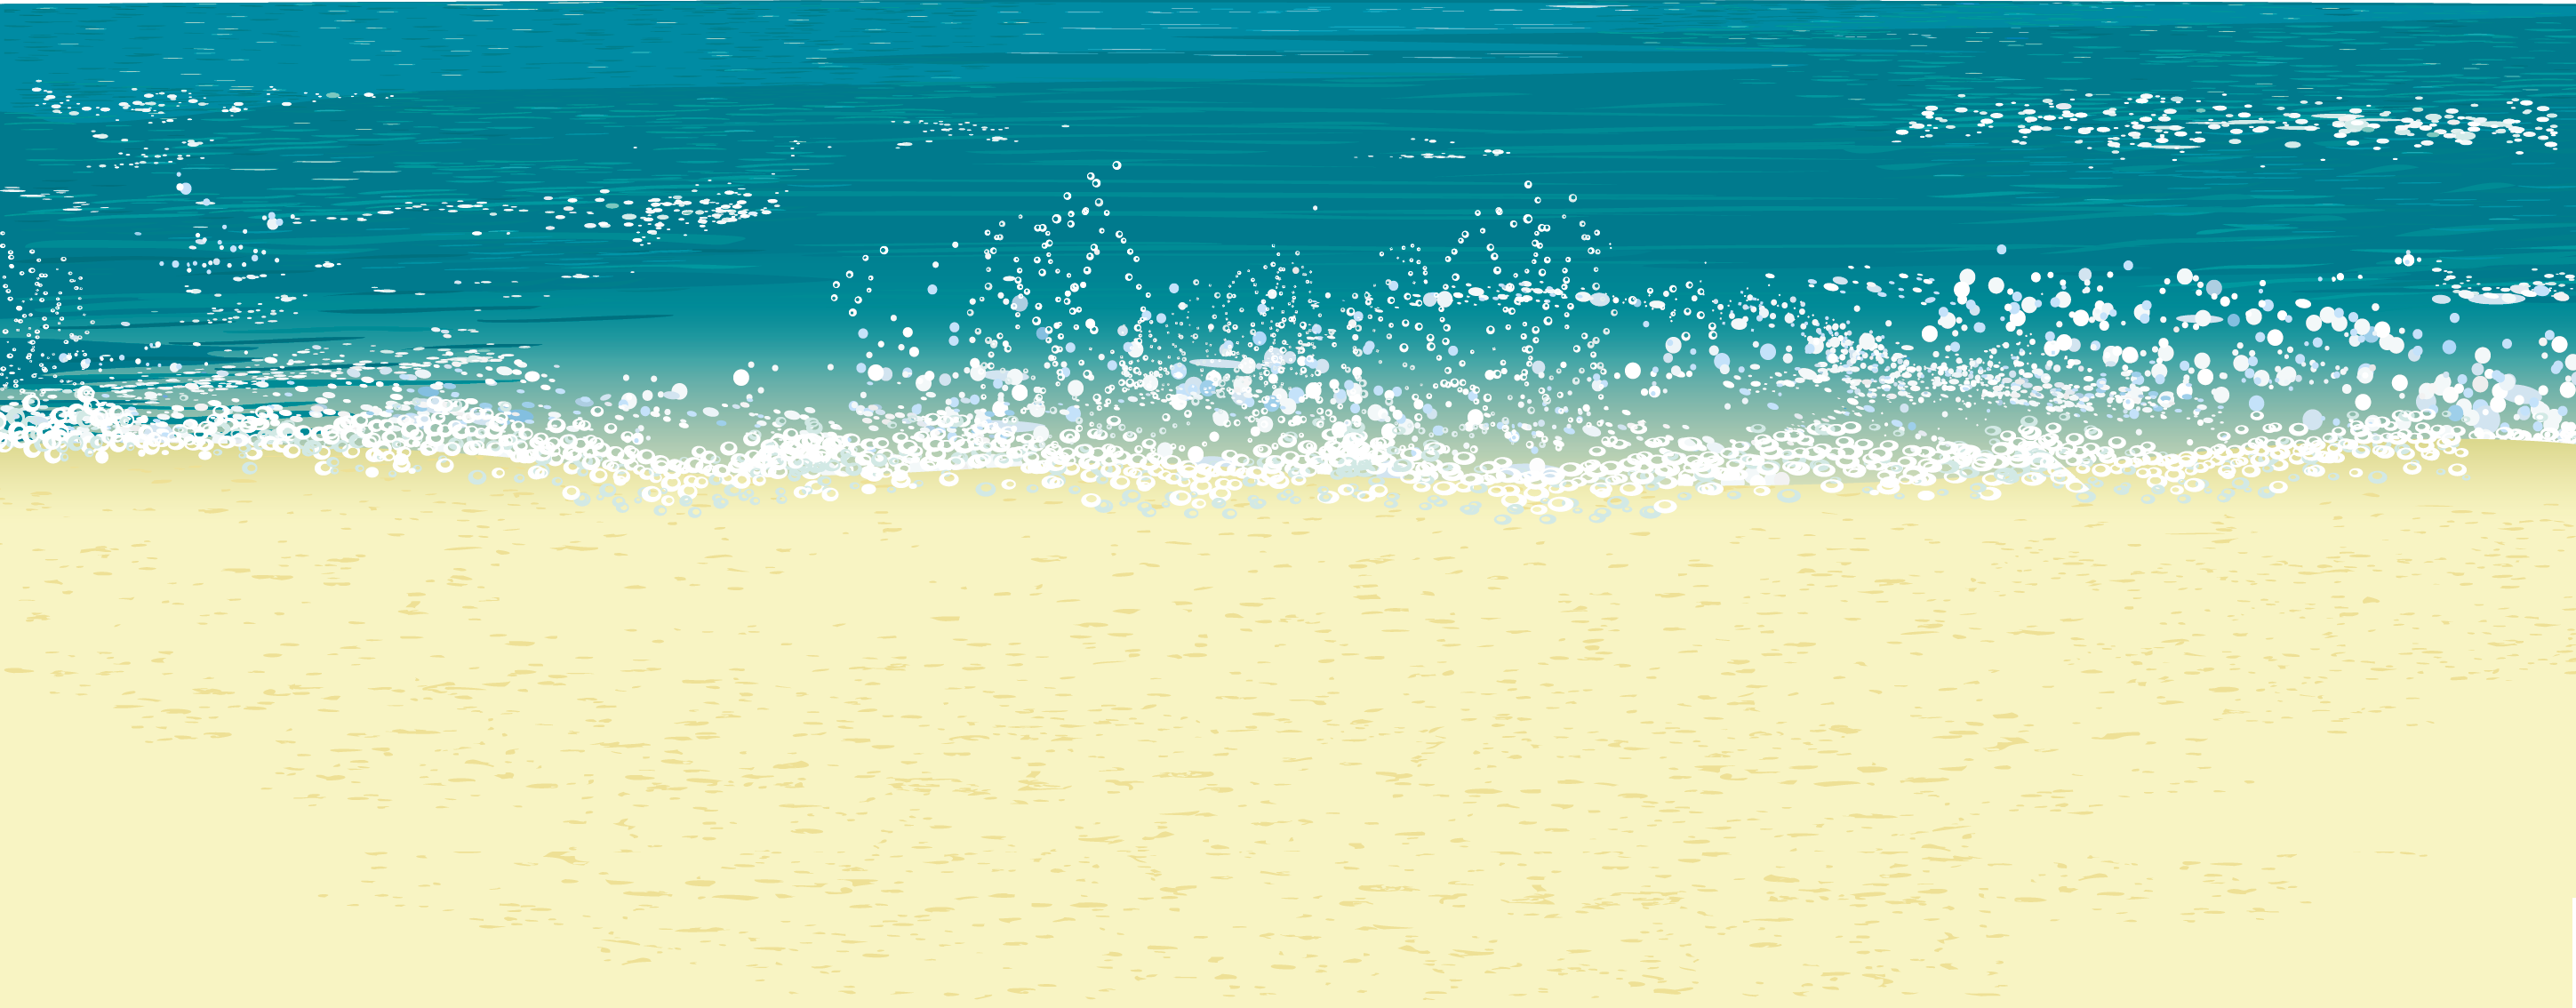 Beach clipart ocean scene Background Beach Art Cliparts Ground